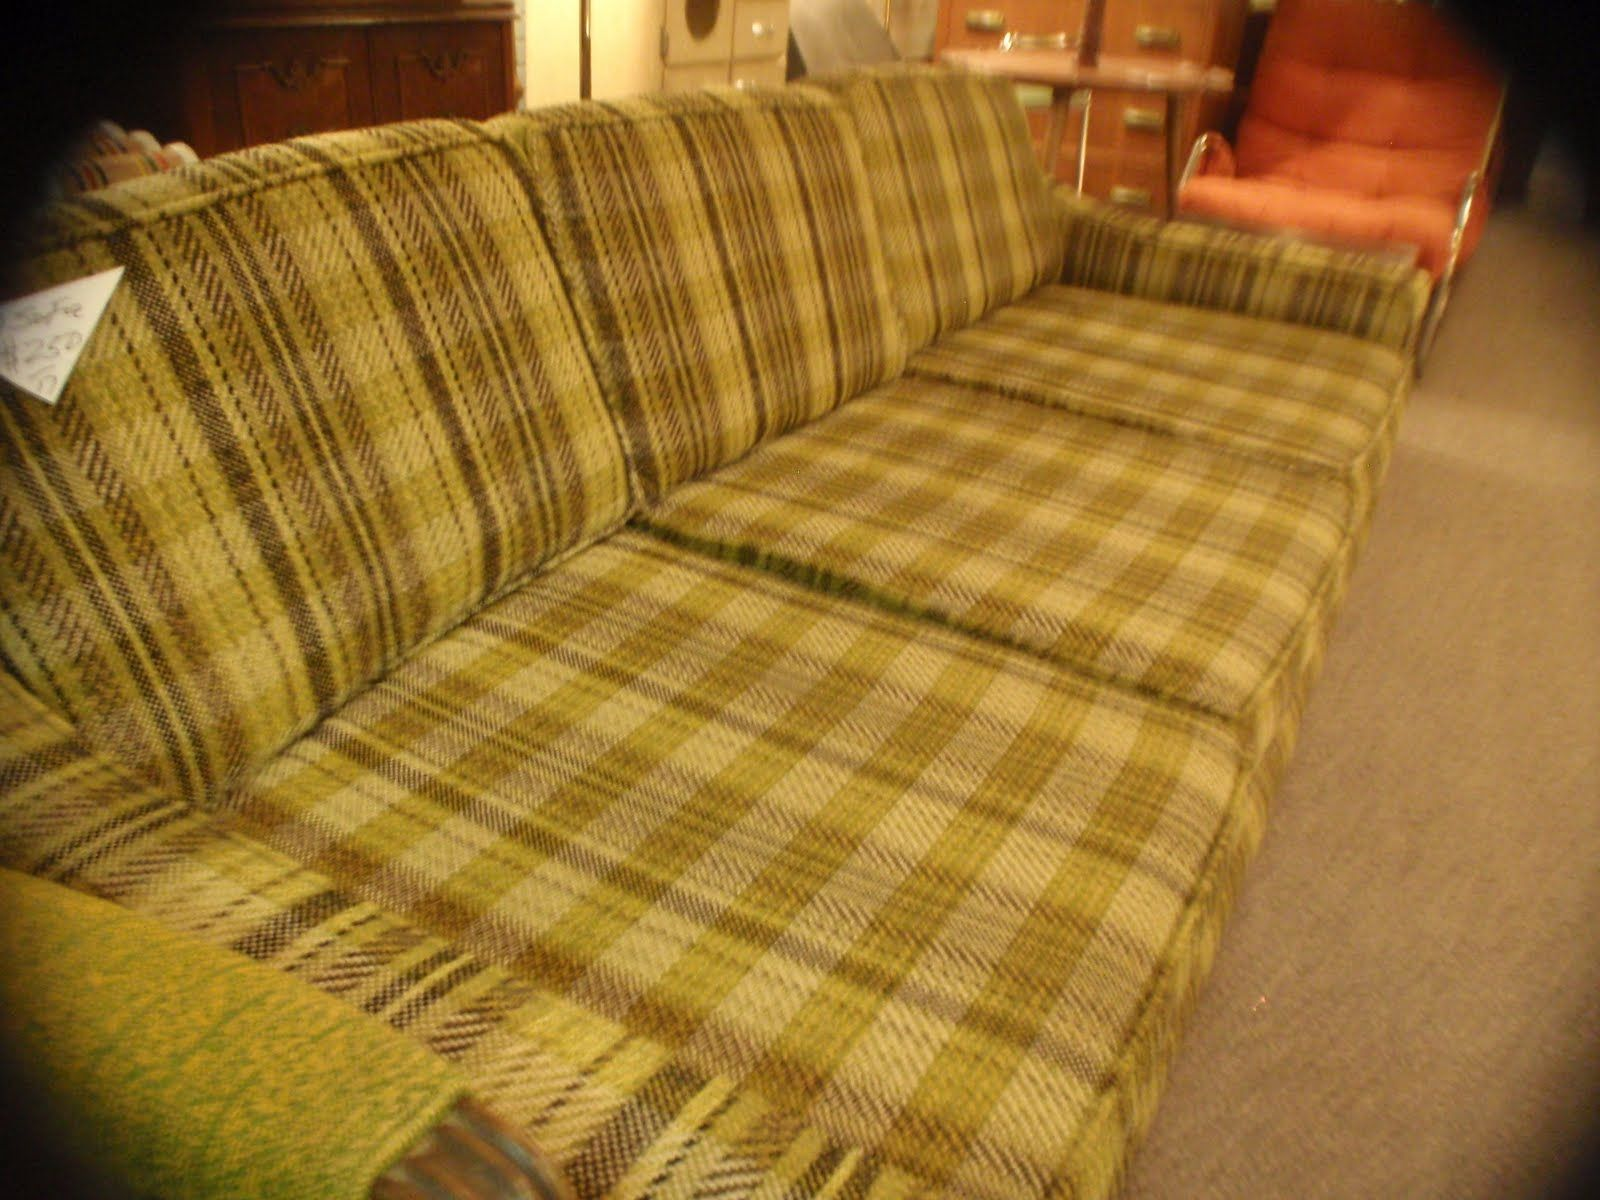 ratty couch   Wangs APT-WT   Couch, Plaid couch, Home decor